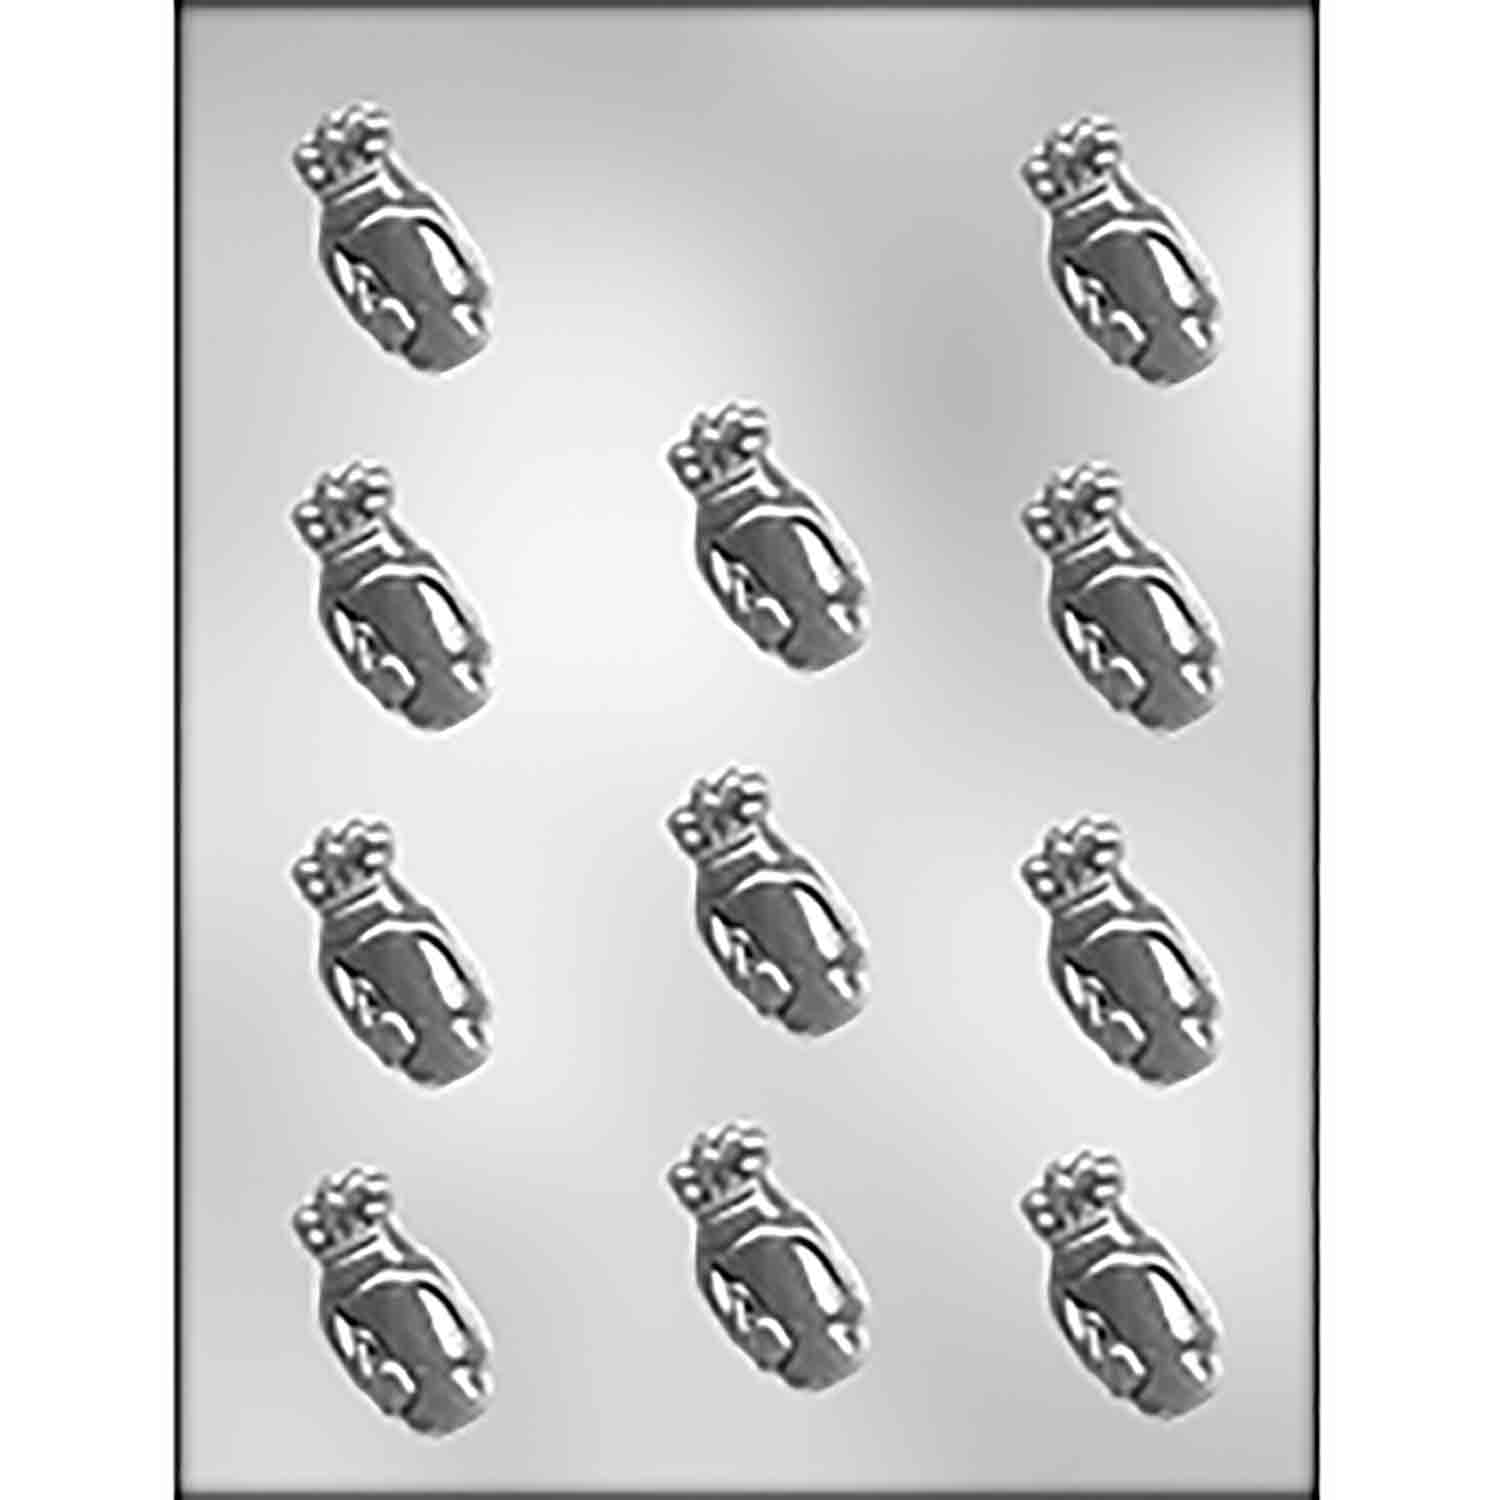 Golf Bag Chocolate Candy Mold